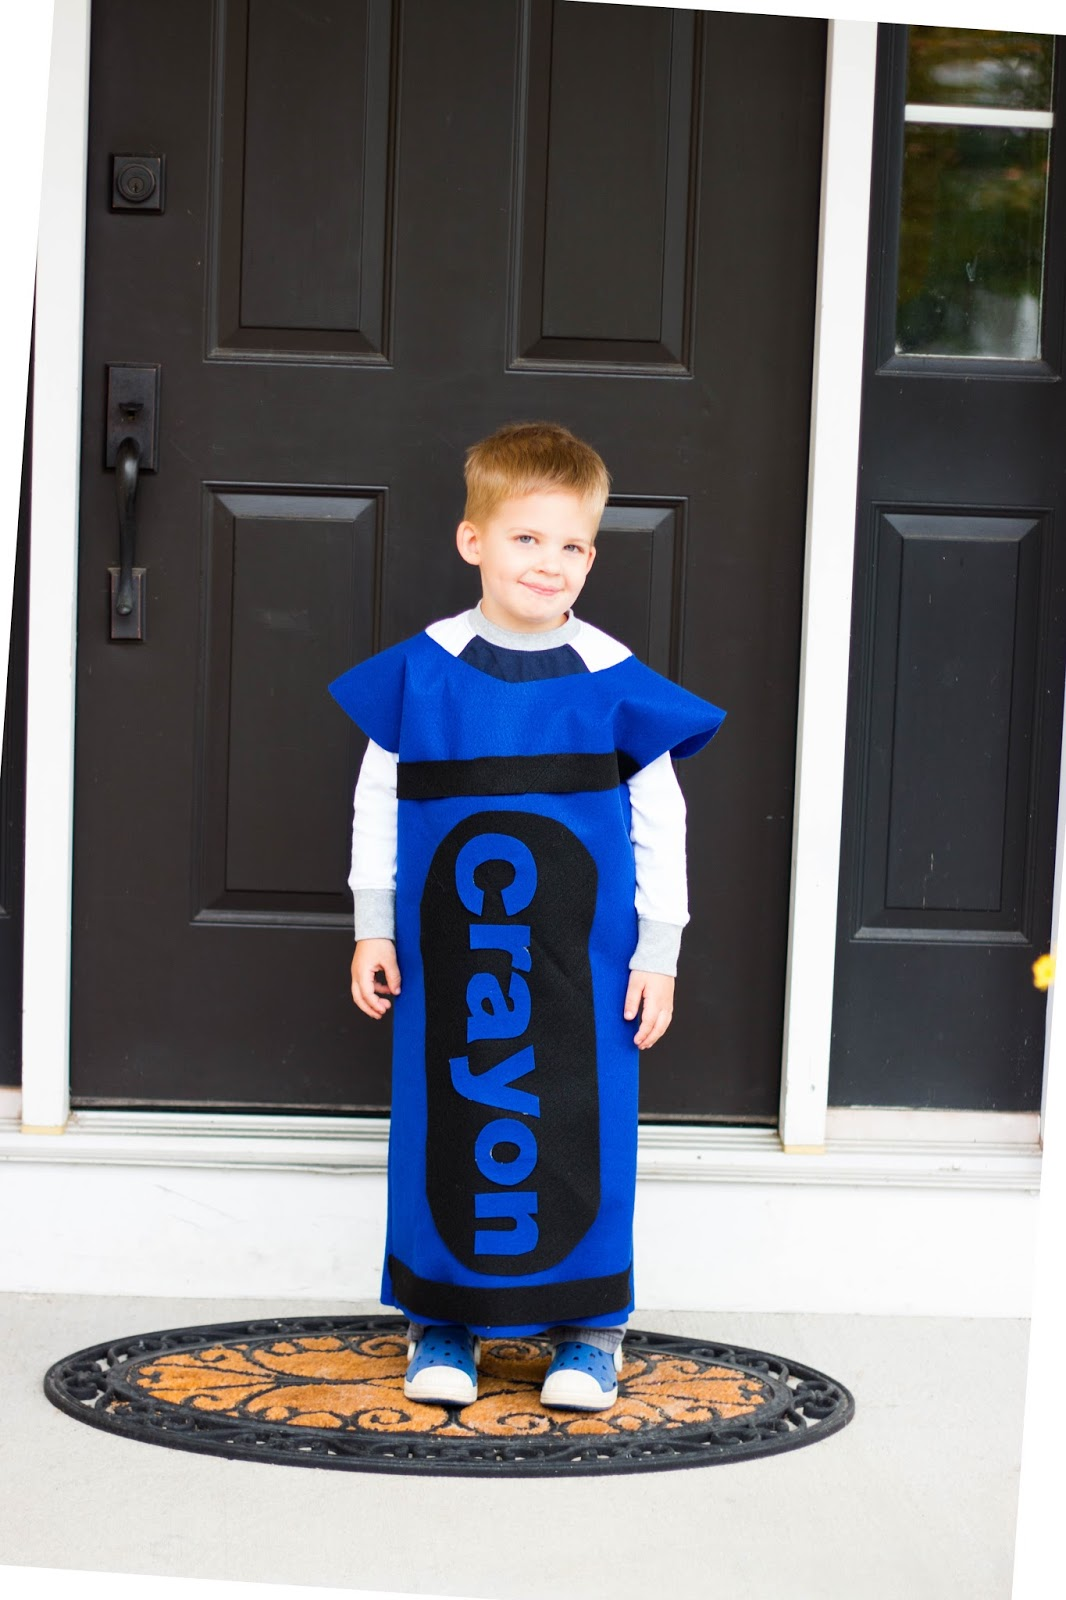 crayon halloween costume. Crayon box costume DIY. Crayola Stencil for costume. DIY Crayon hat template. DIY crayon costume with tutu. DIY crayon costume Shirt. Crayon hat printable. Crayon tip hat template. Baby crayon costume.